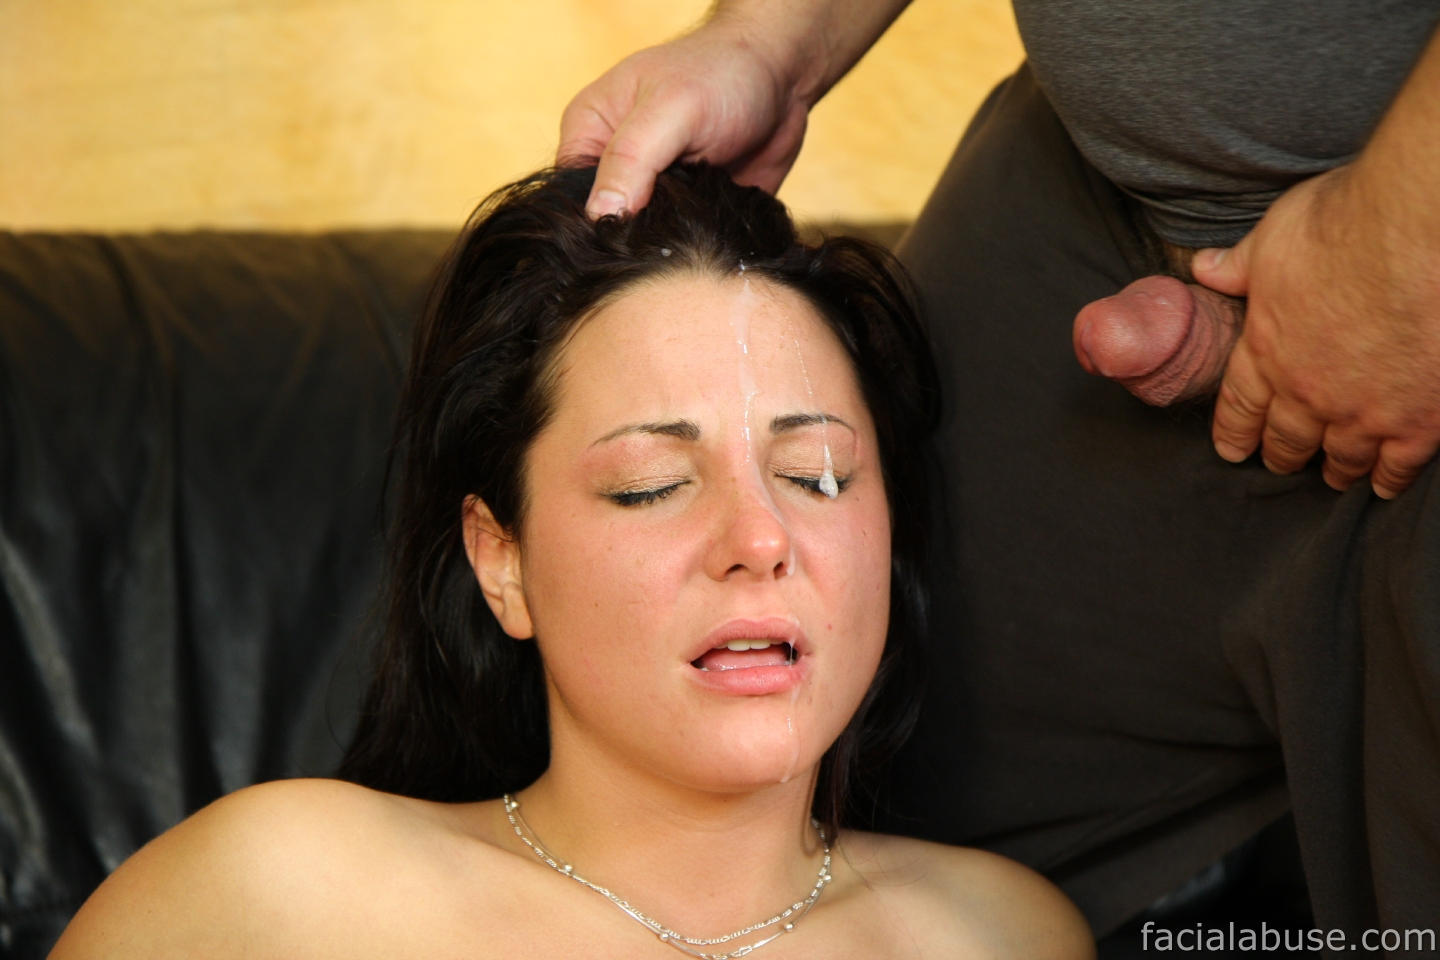 Shy wife fuck stories